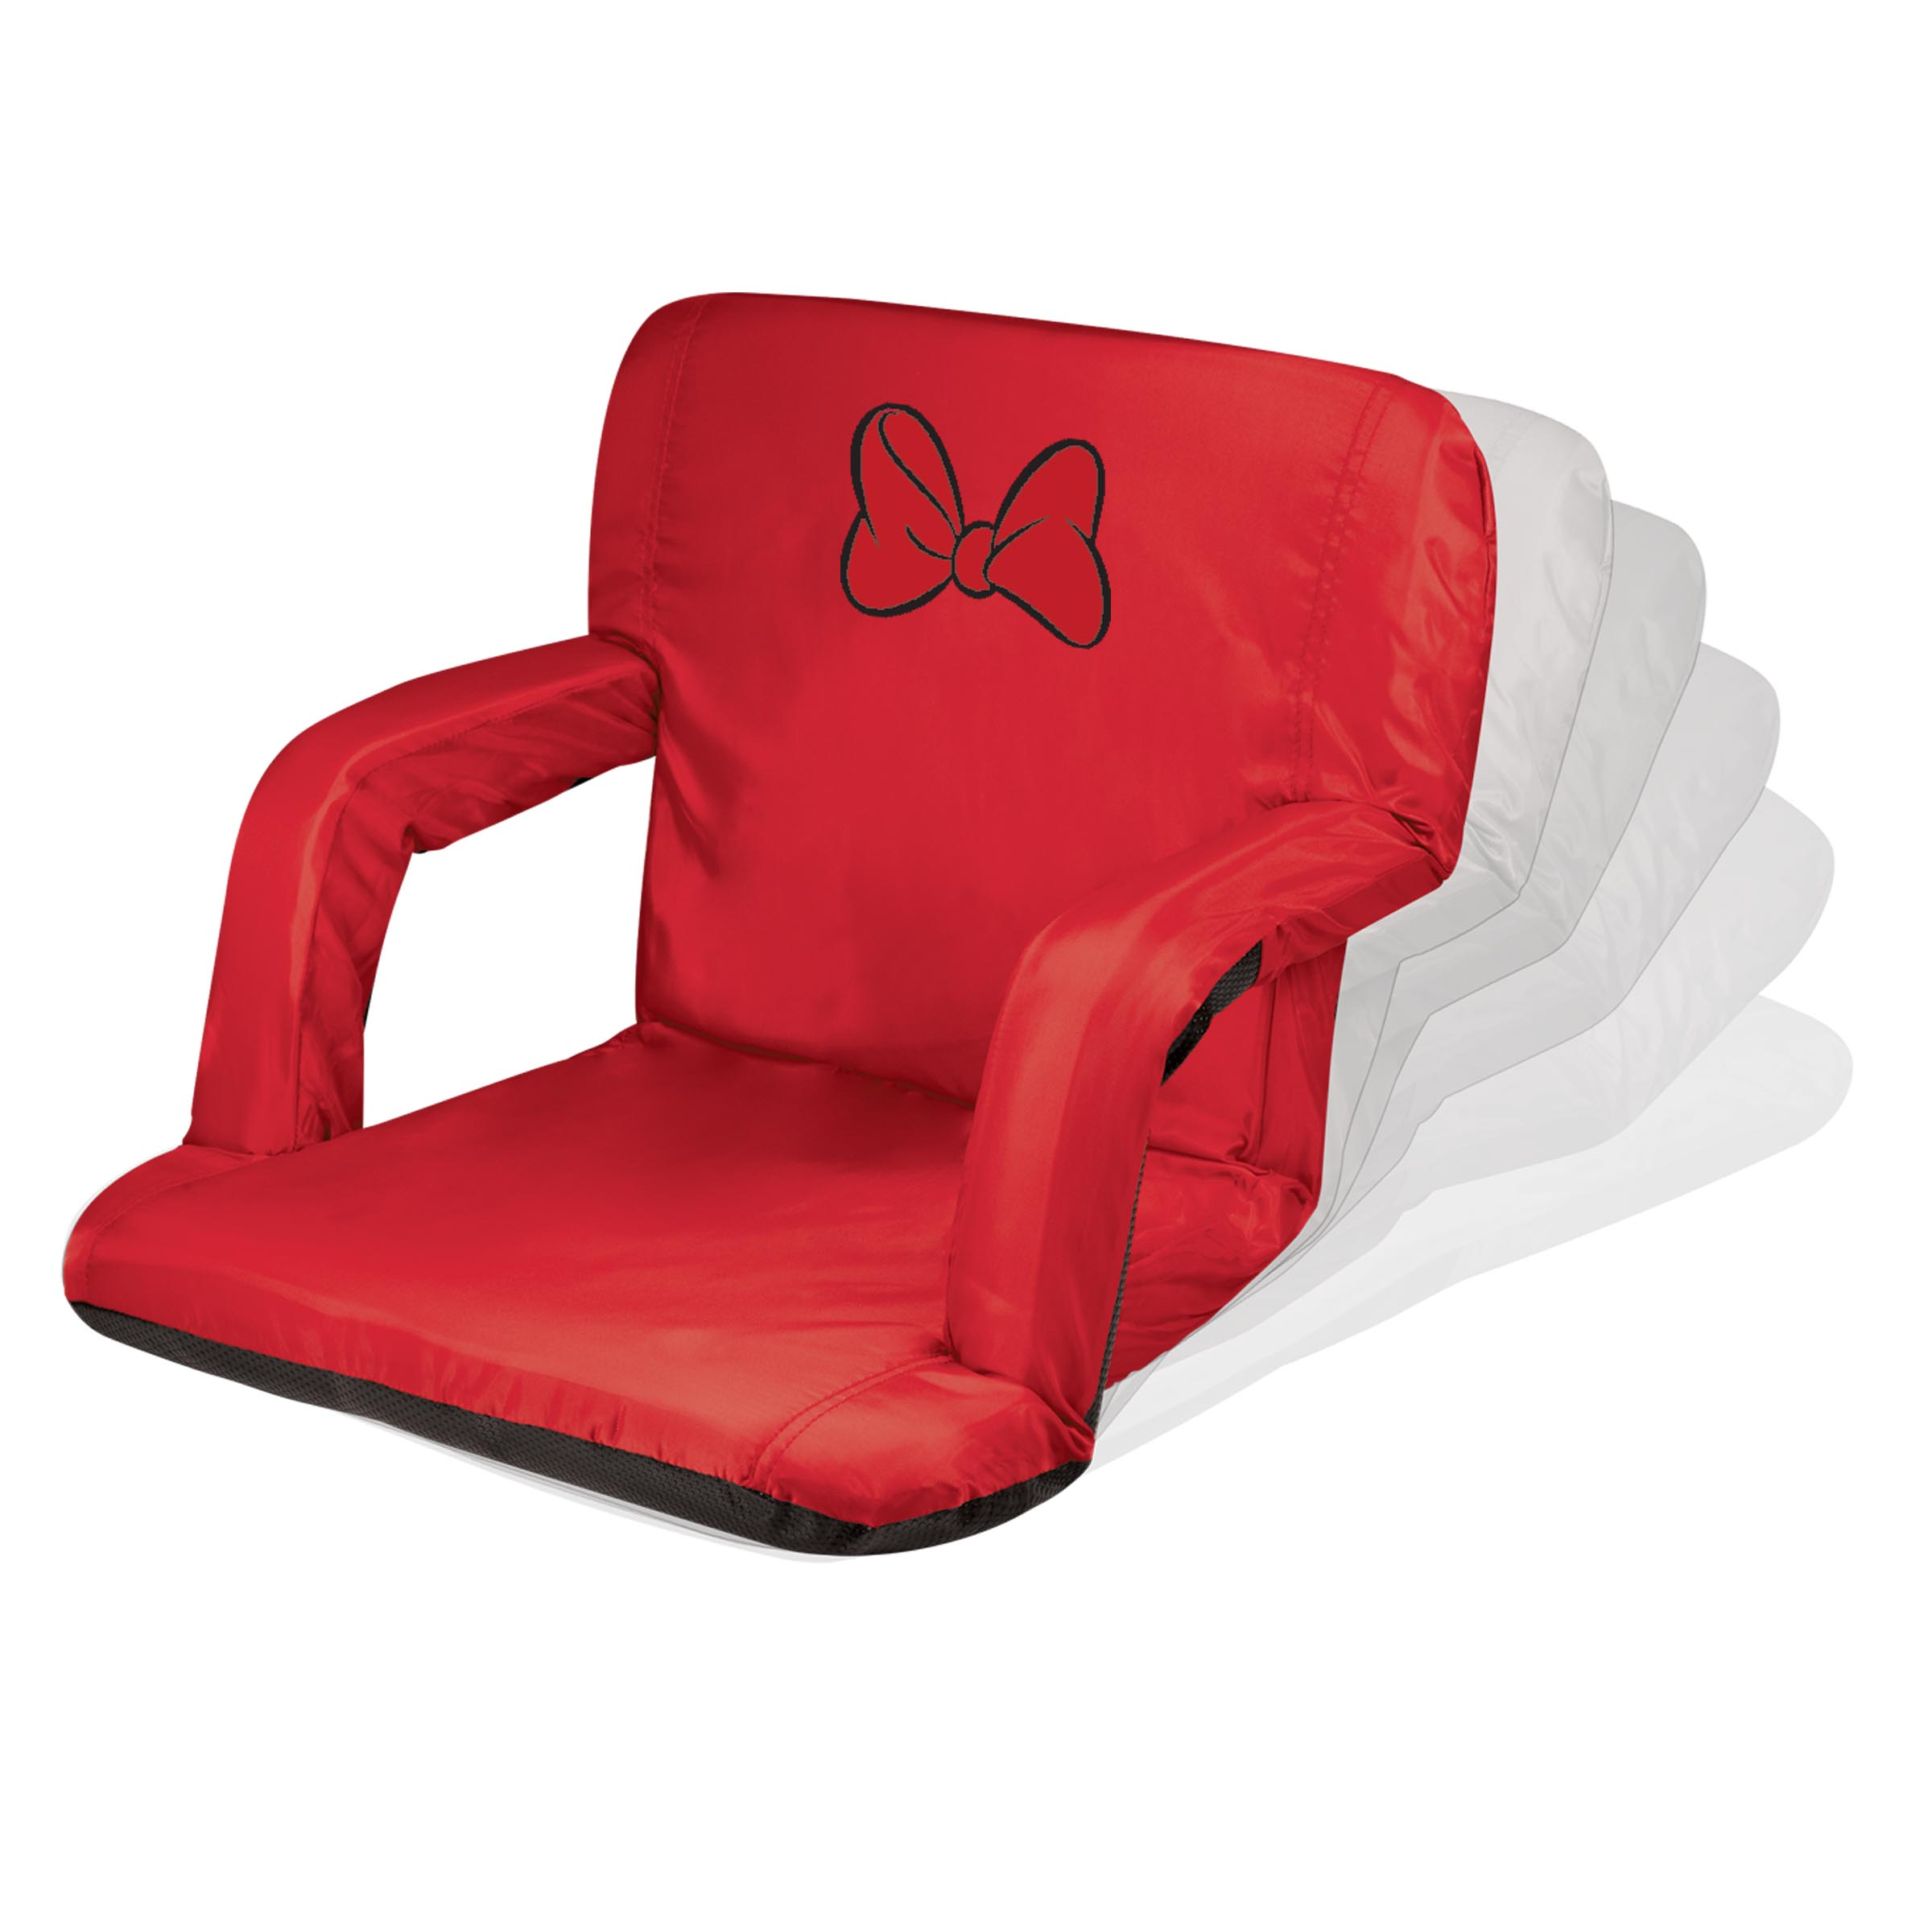 Picnic Time Stadium Chair Minnie Mouse 39ventura 39 Portable Reclining Stadium Seat